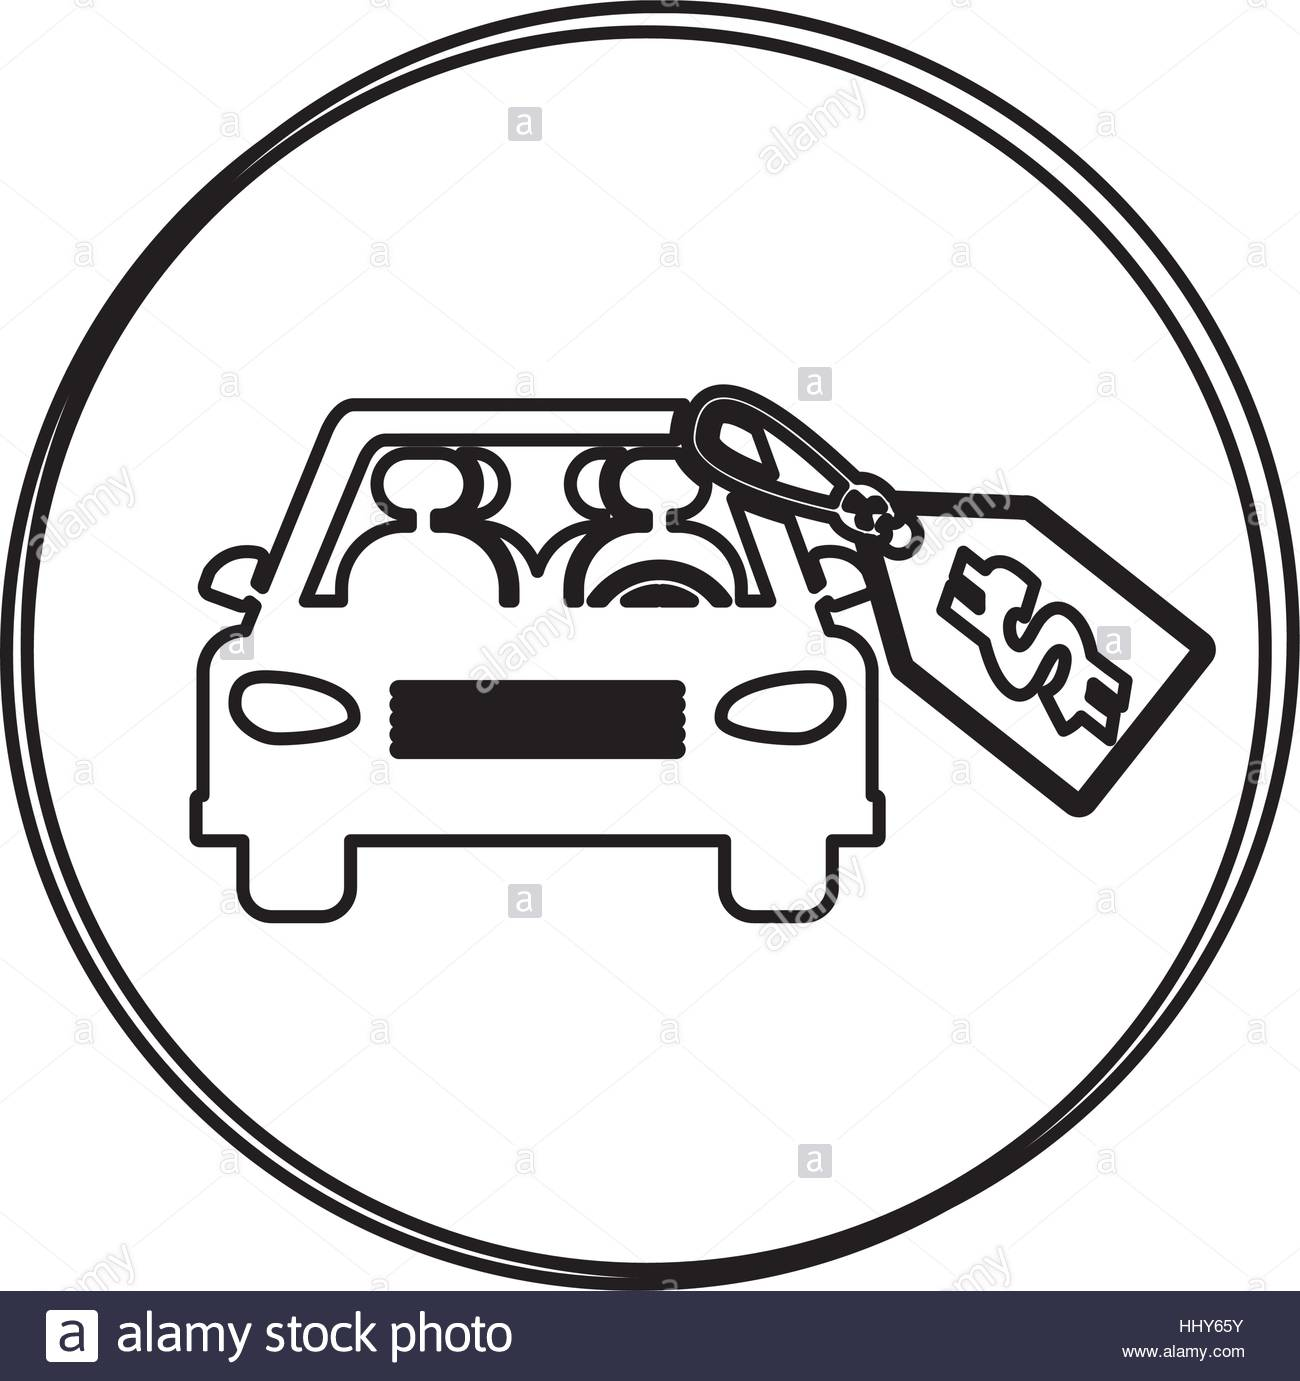 1300x1381 Silhouette Circular Shape With Car And Price Tag Dollar Vector